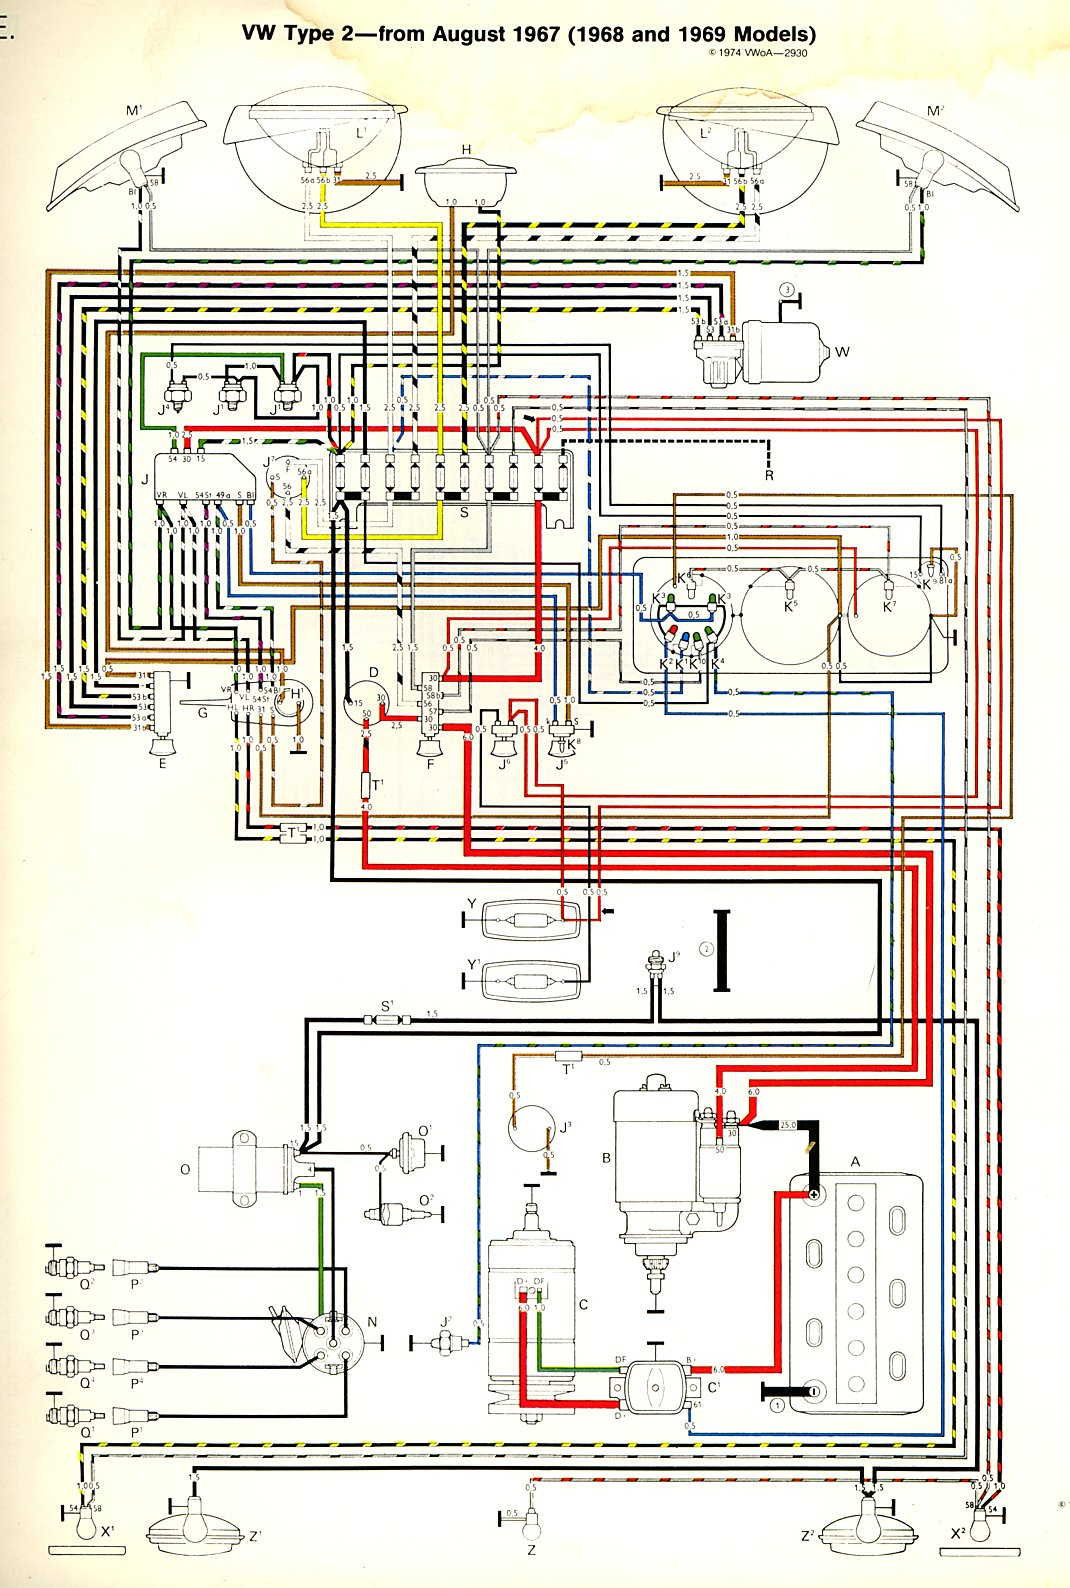 baybus_6869a 1968 69 bus wiring diagram thegoldenbug com 1968 vw bug headlight wiring diagram at soozxer.org